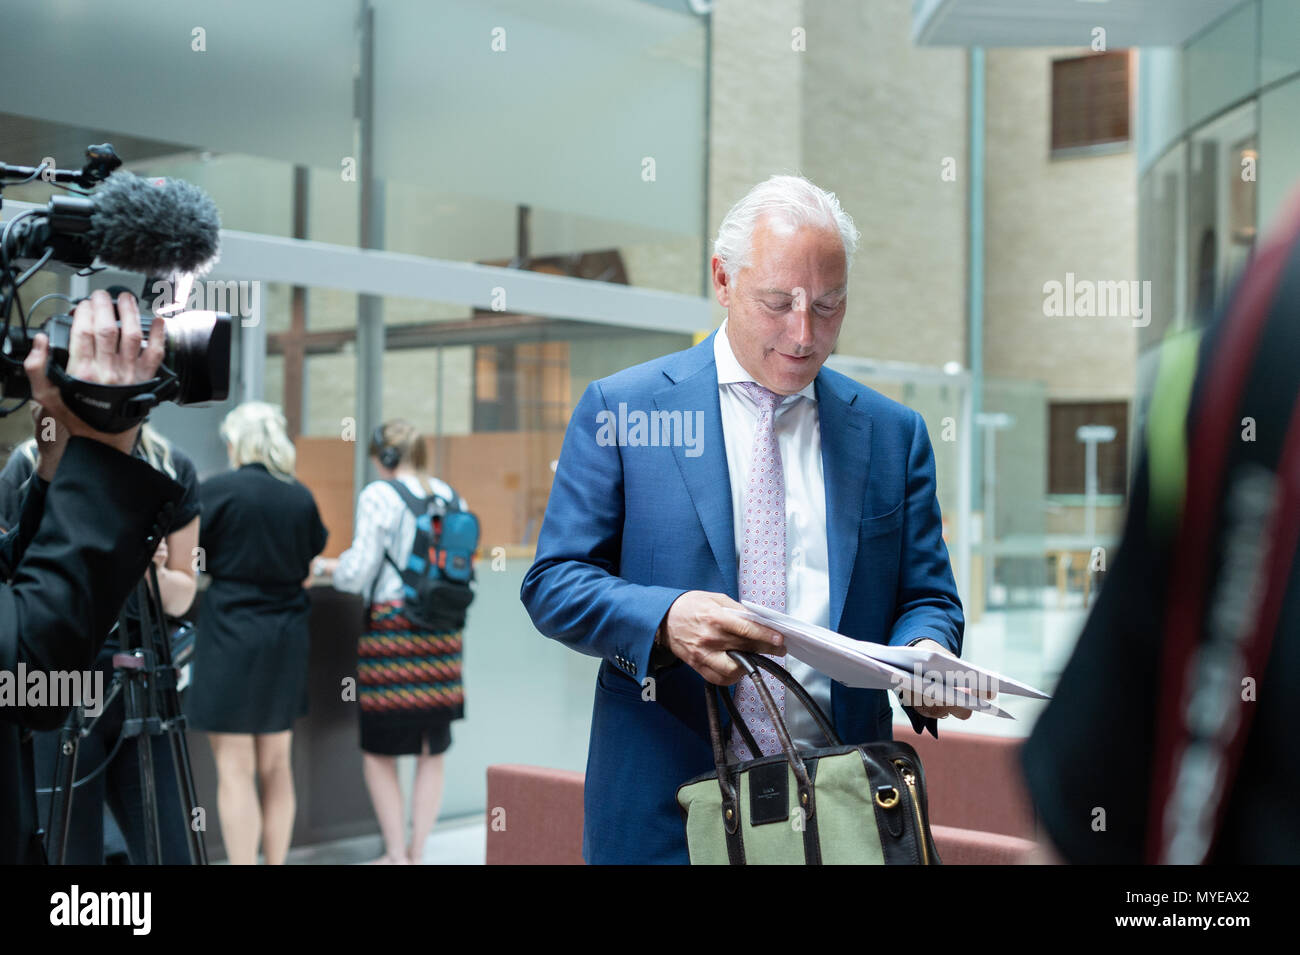 Stockholm, Sweden, June 7, 2018. Stockholm district court today sentenced Rakhmat Akilov to life imprisonment for terrorism attack on Drottninggatan, April 7, 2017. Akilov will be deported after having served his sentence. Defense Attorney Johan Eriksson reads the verdict.Alamy Live News - Stock Image